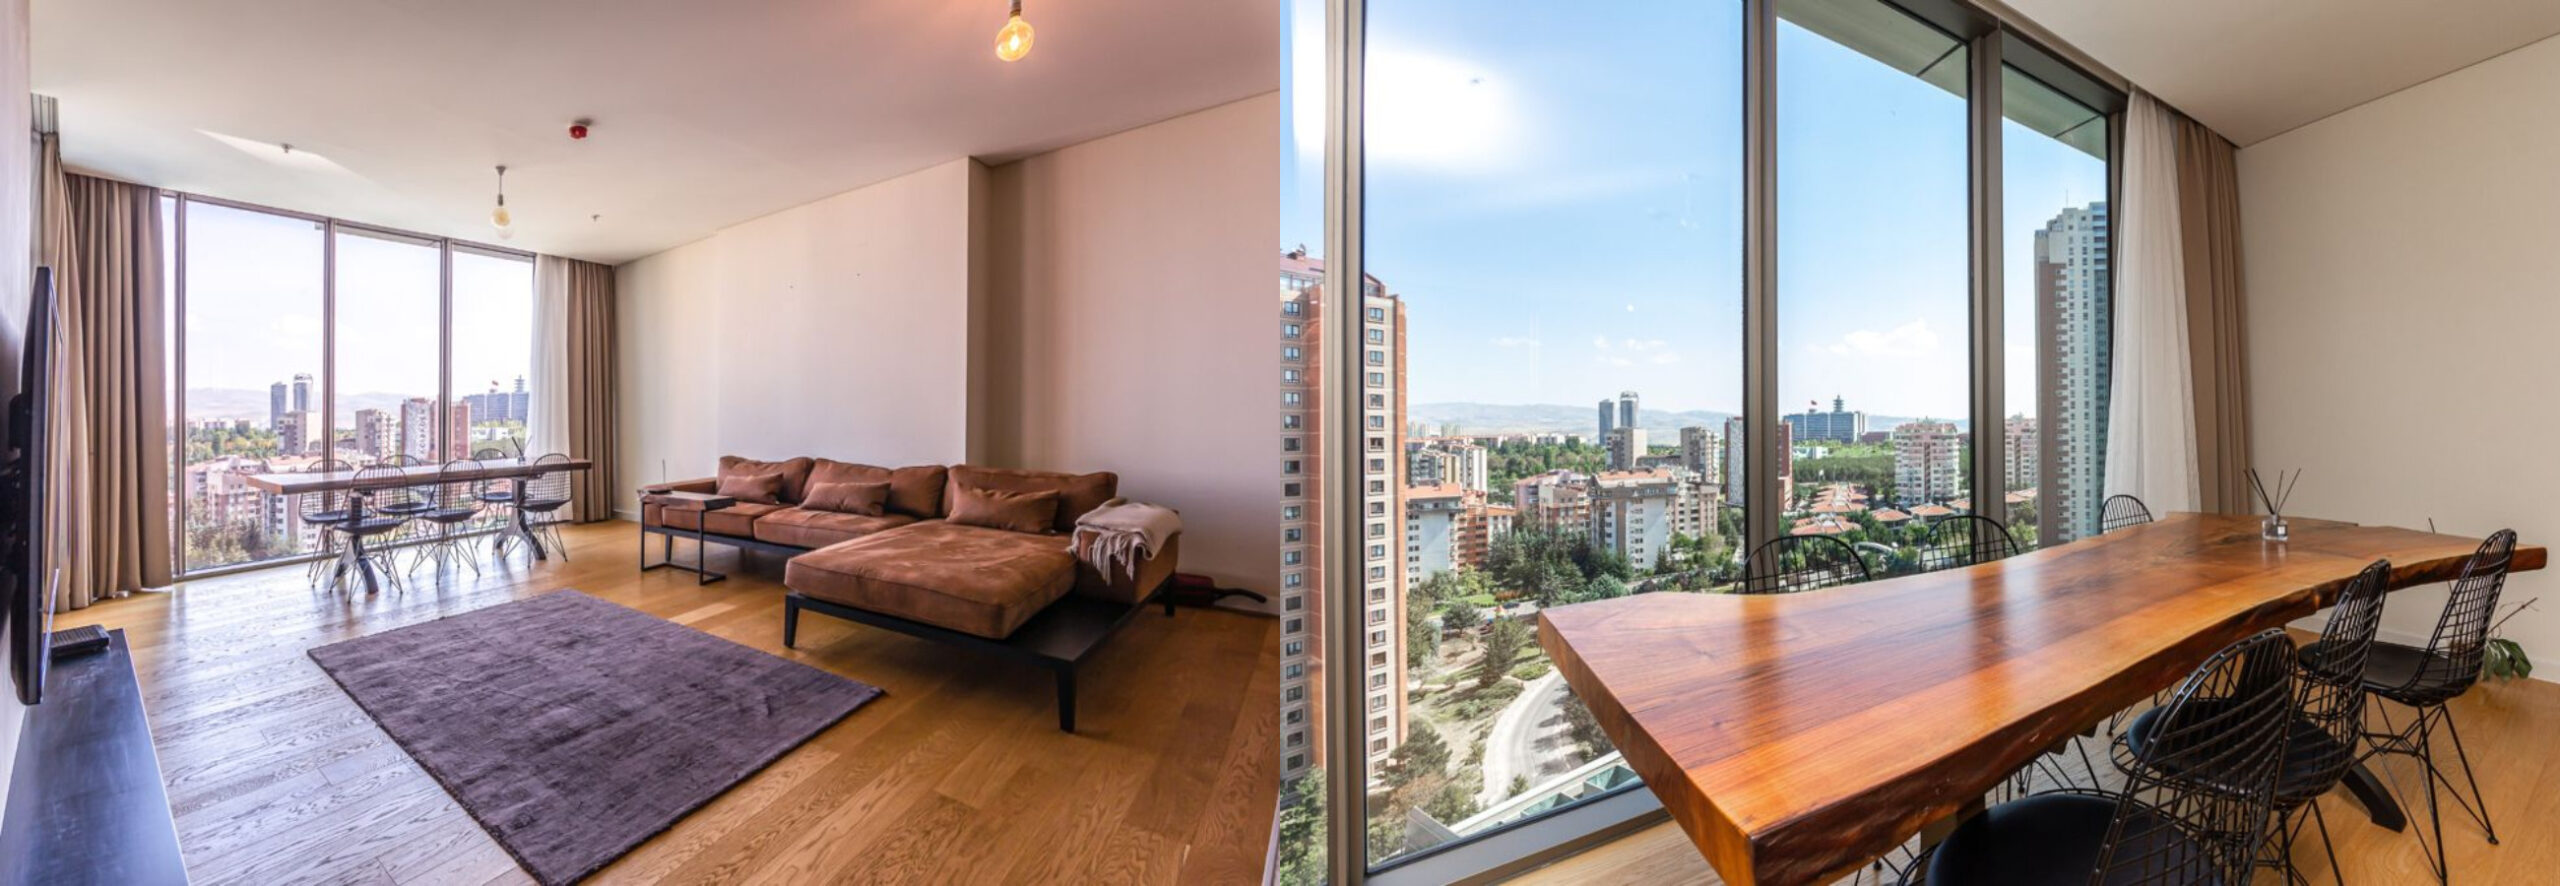 2+1 FURNISHED FLAT IN ONE TOWER, ORAN CITY